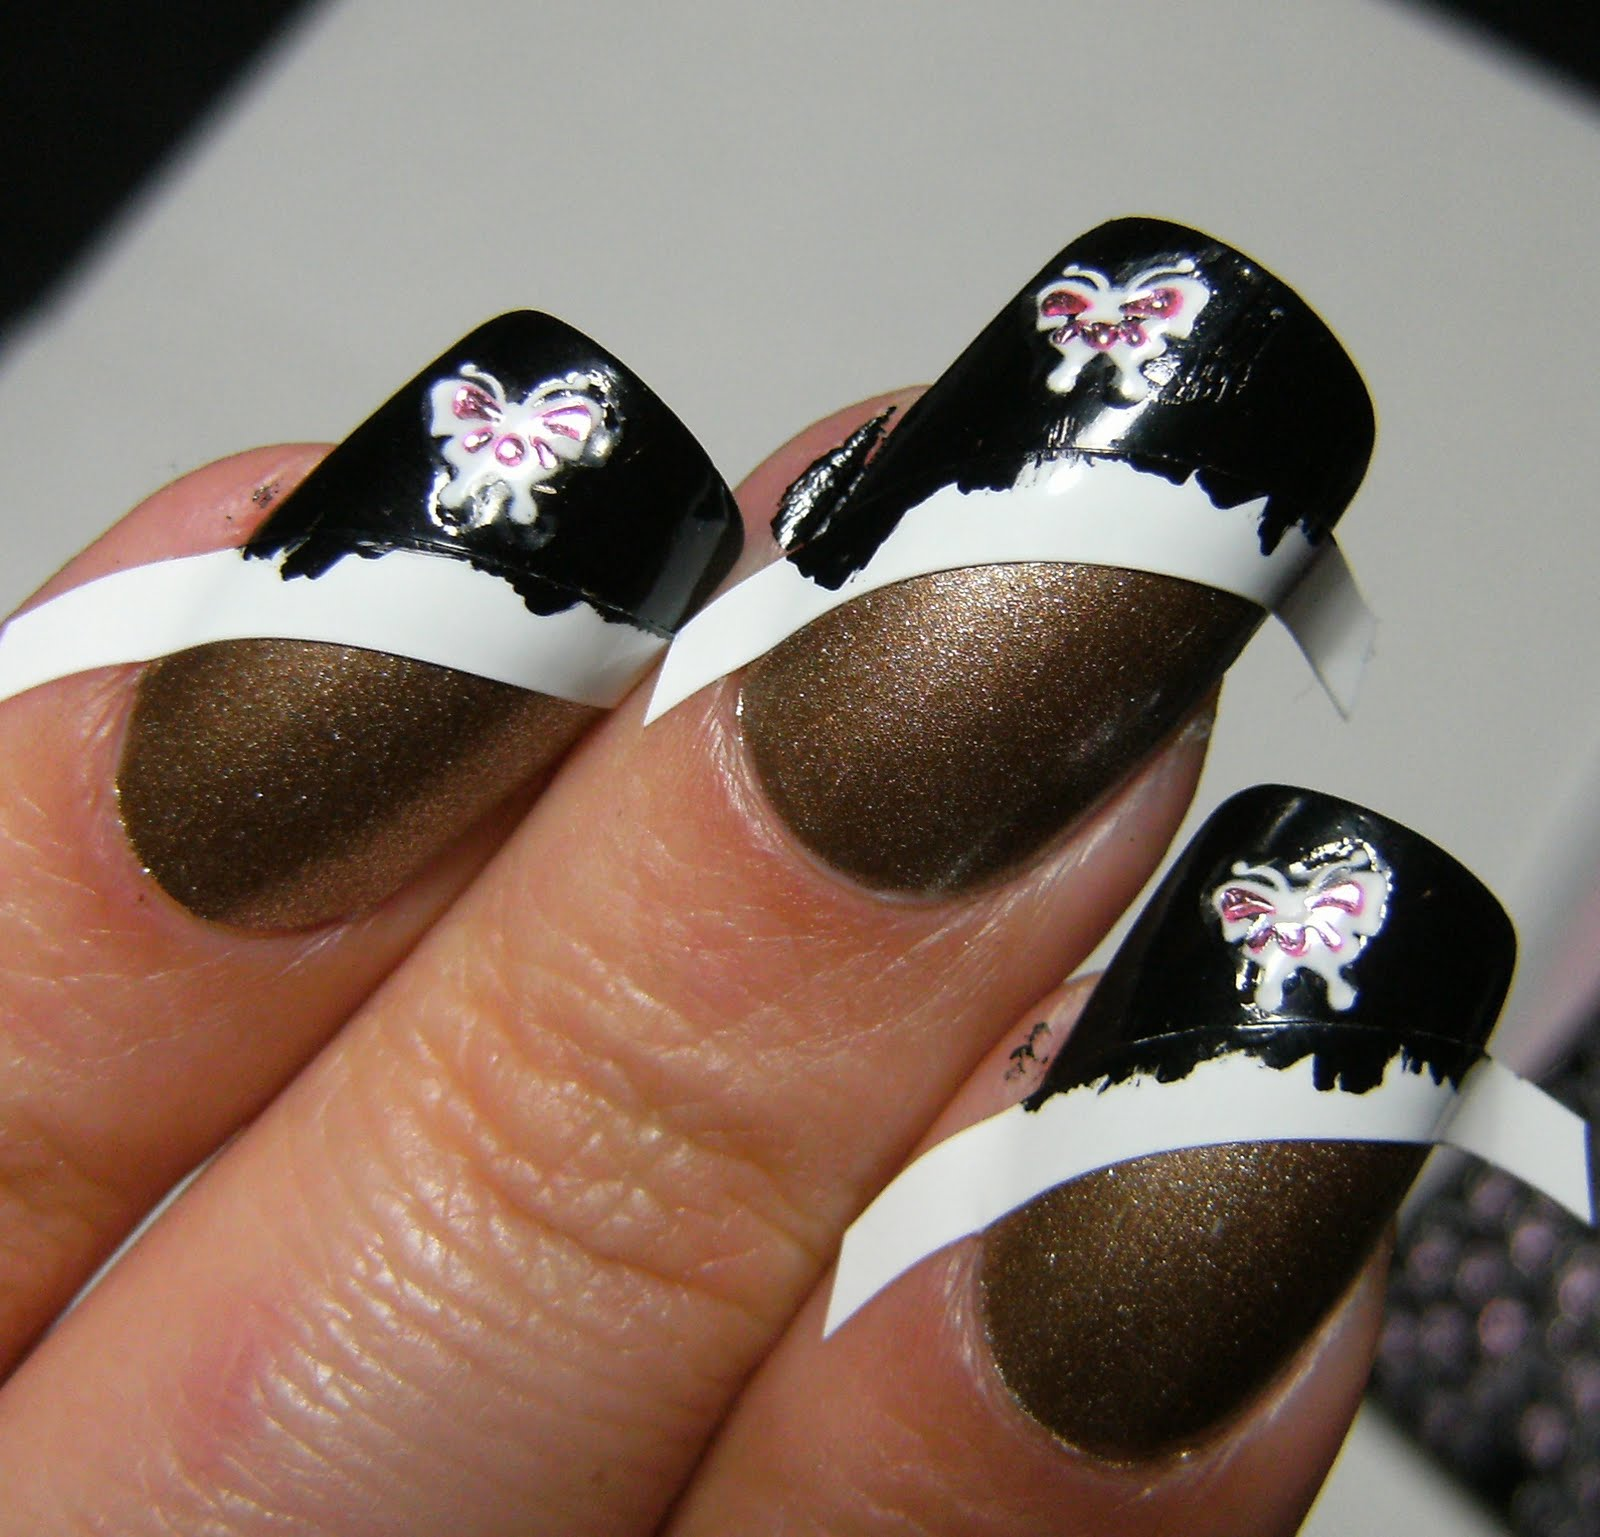 Fing rs nail art image collections nail art and nail design ideas fing rs nail art gallery nail art and nail design ideas uas mapamap nail art fingrs prinsesfo Gallery